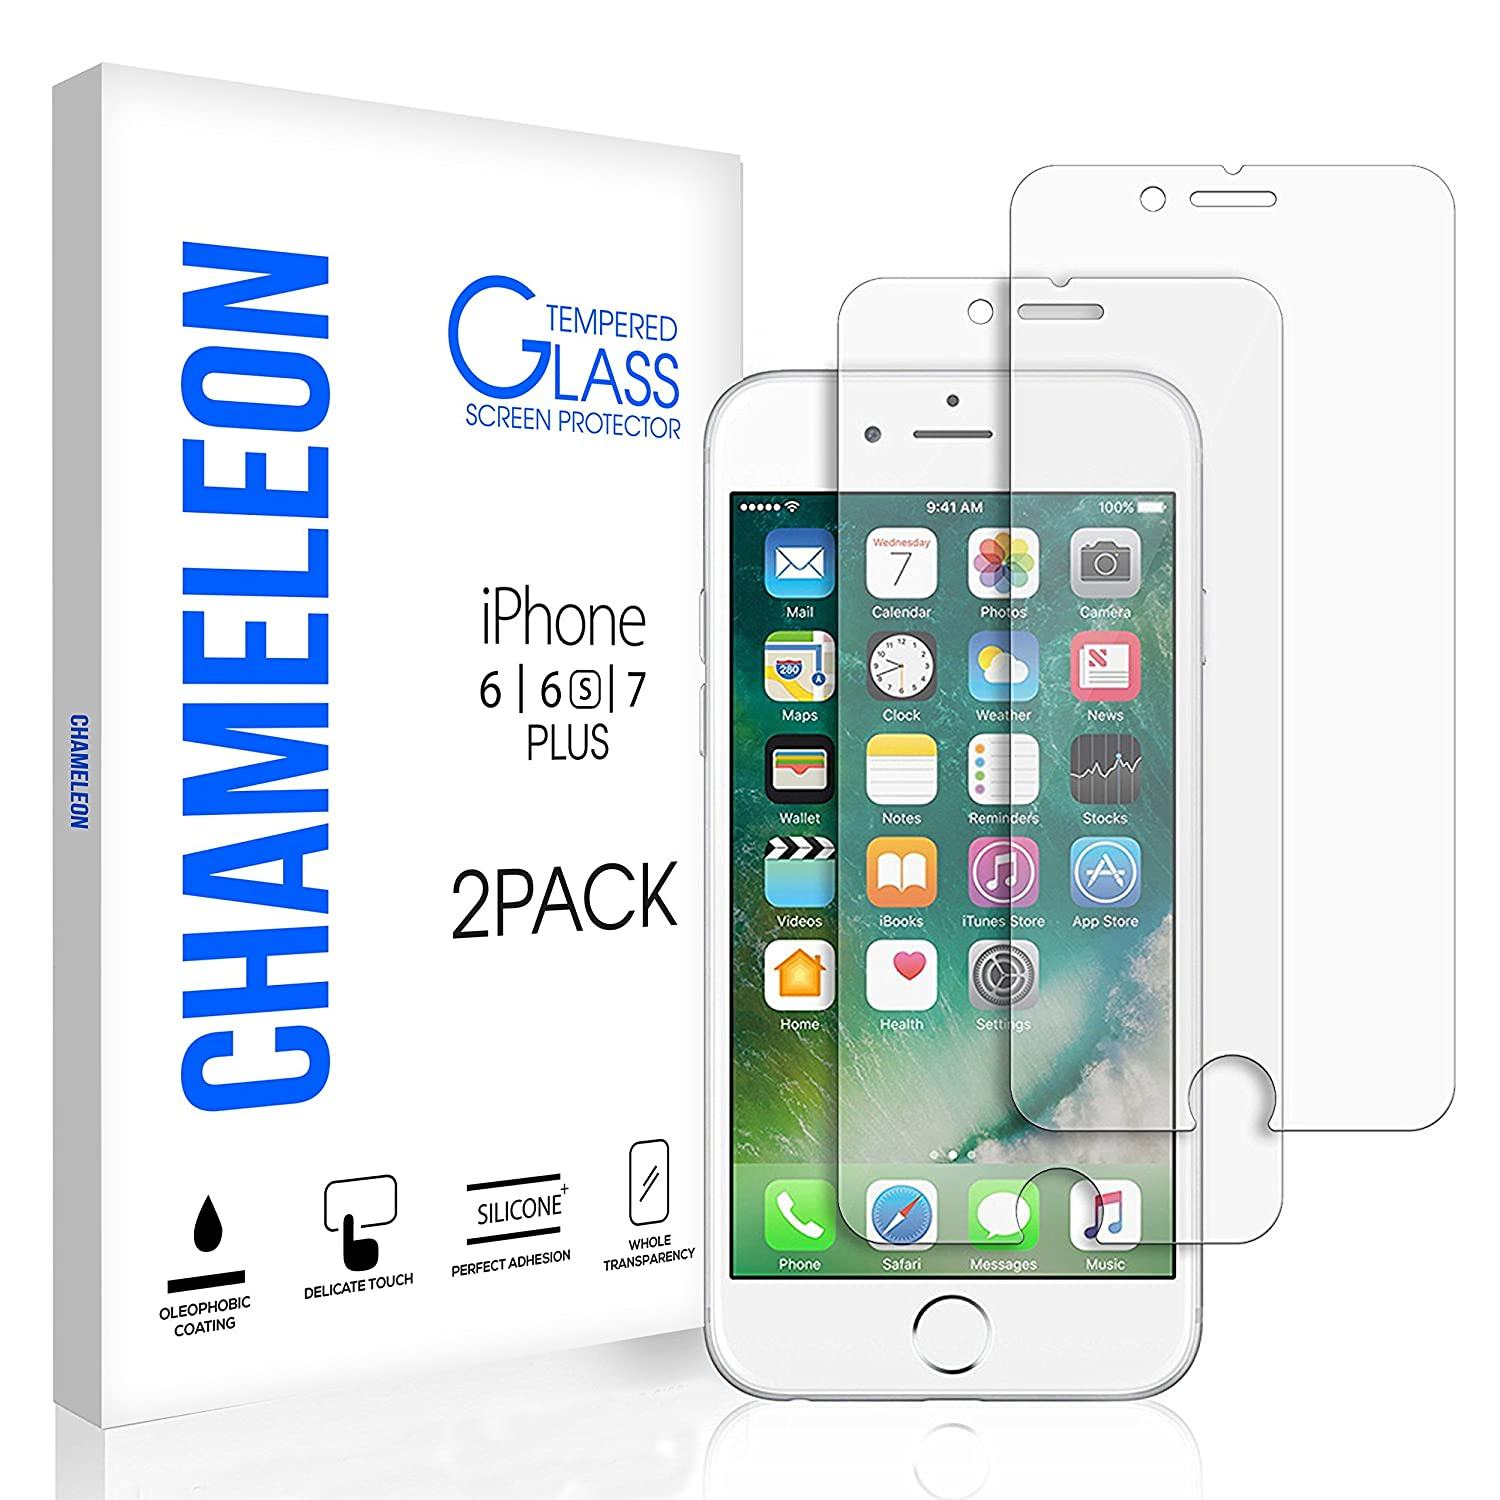 new concept 64608 83856 iPhone 7 Plus 6S Plus 6 Plus Screen Protector, Chameleon iPhone 7 Plus  Tempered Glass Screen Protector for Apple iPhone 7 Plus, iPhone 6S Plus,  iPhone ...